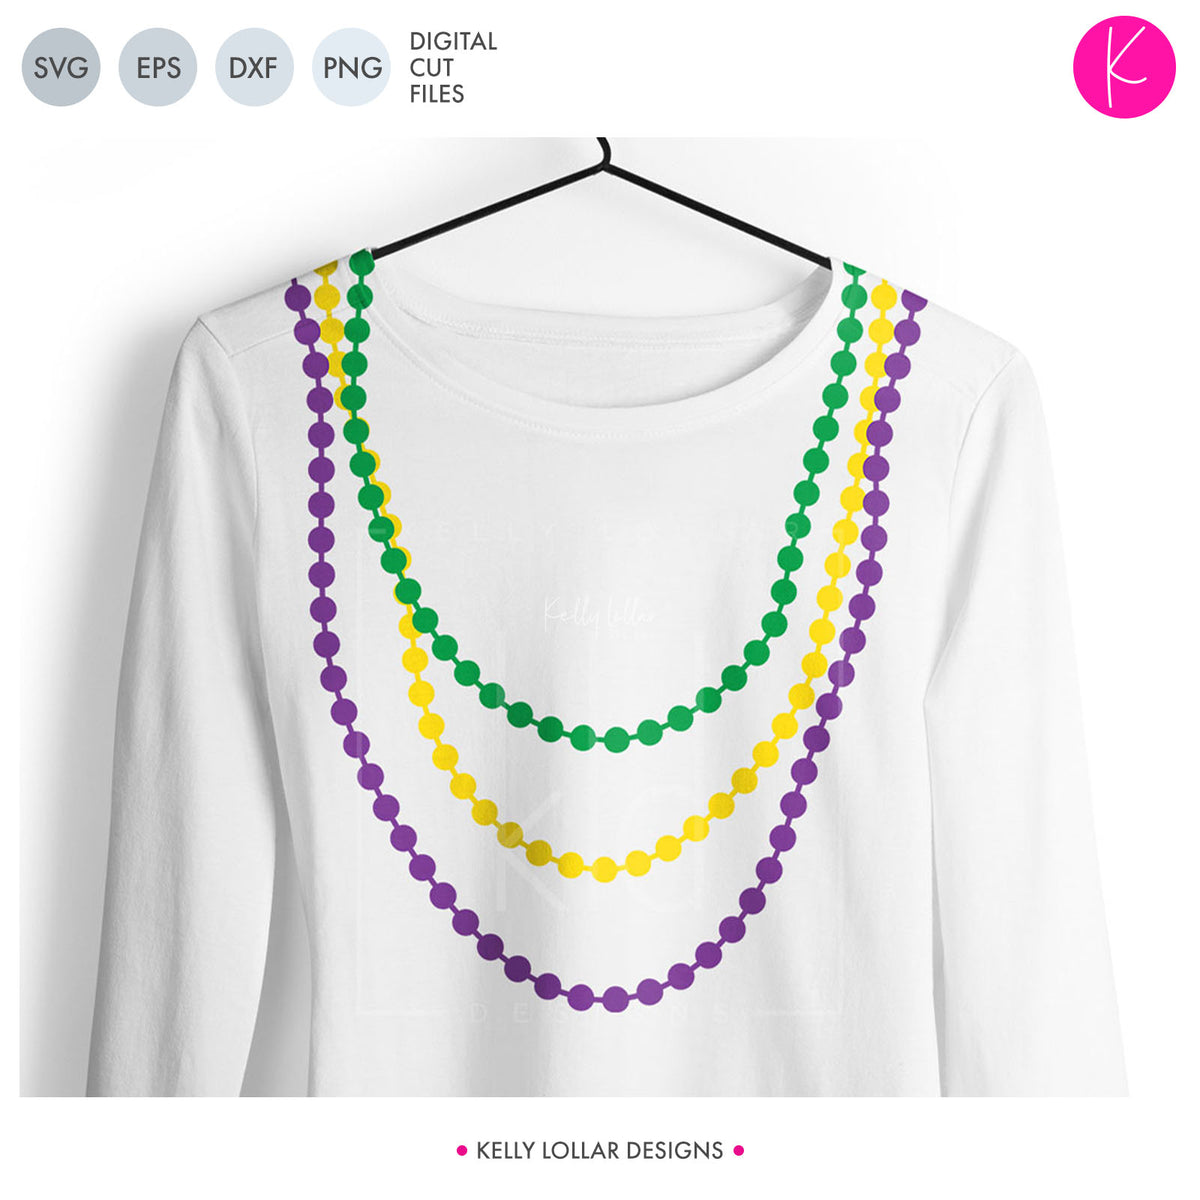 Mardi Gras Beads Pack | SVG DXF EPS PNG Cut Files